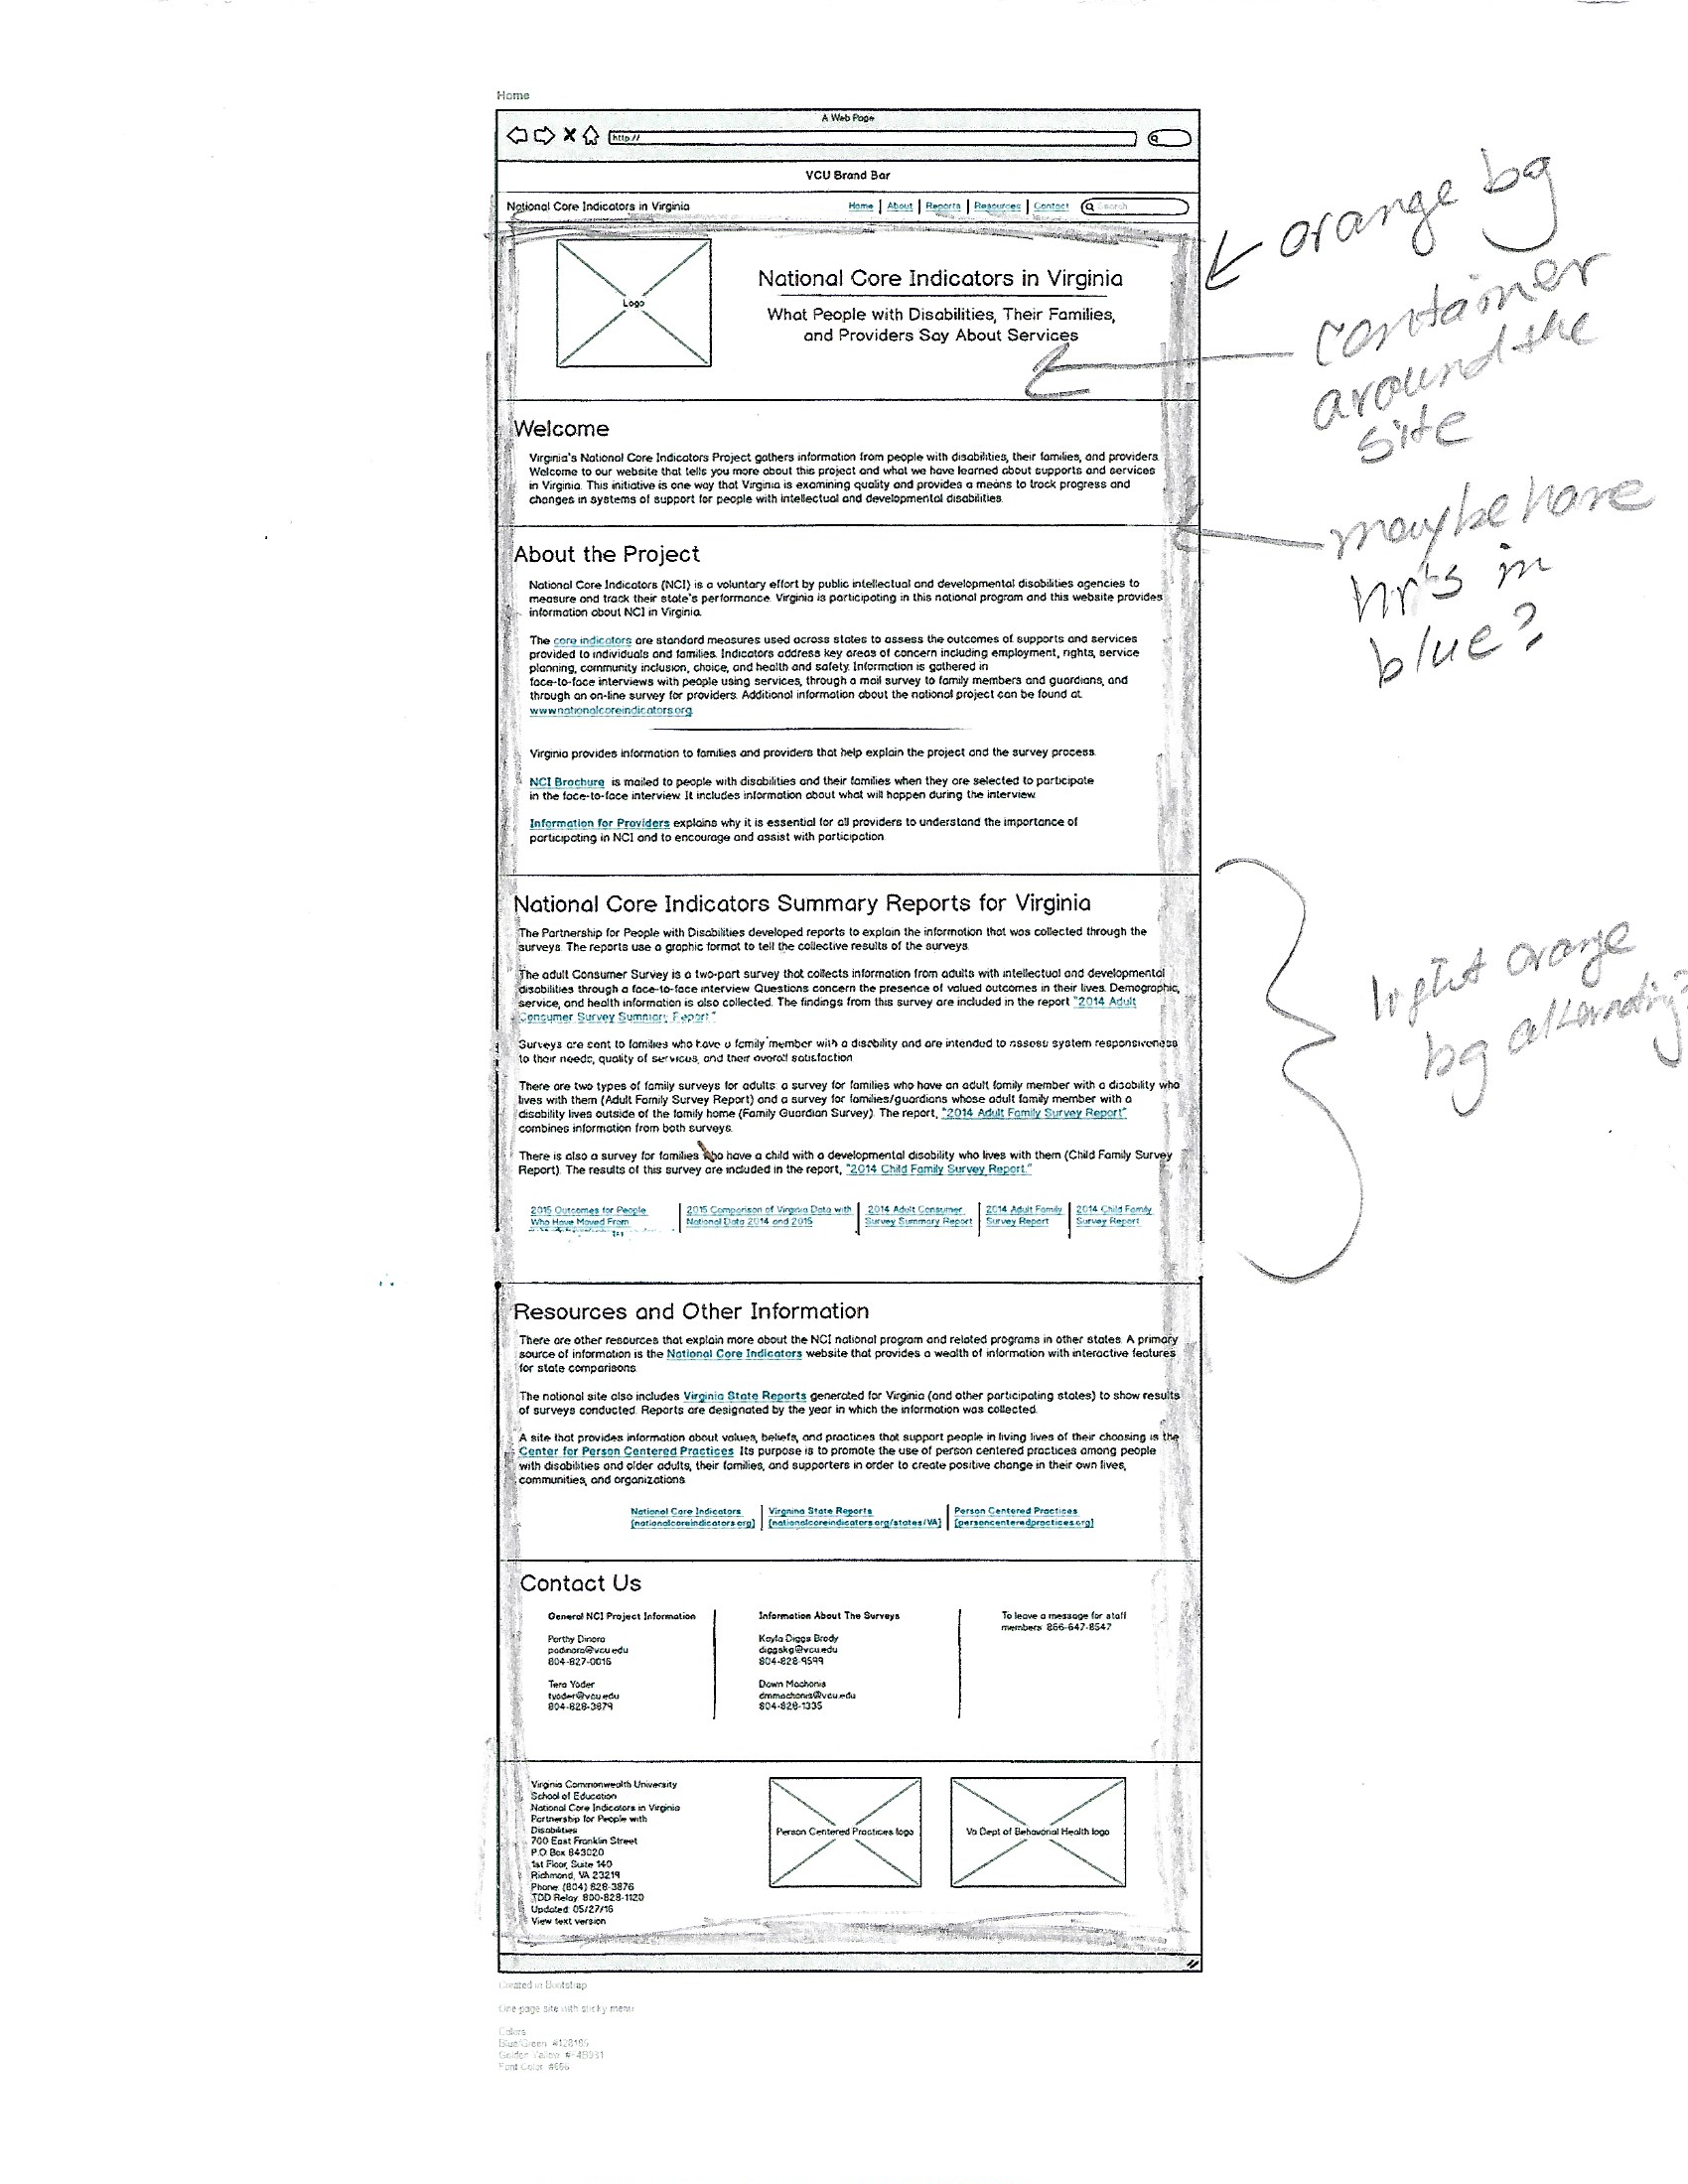 Wireframe - I then used Balsamiq to create a one-page layout using the navigation on the original site as a guide for the placement of each section and its available content.